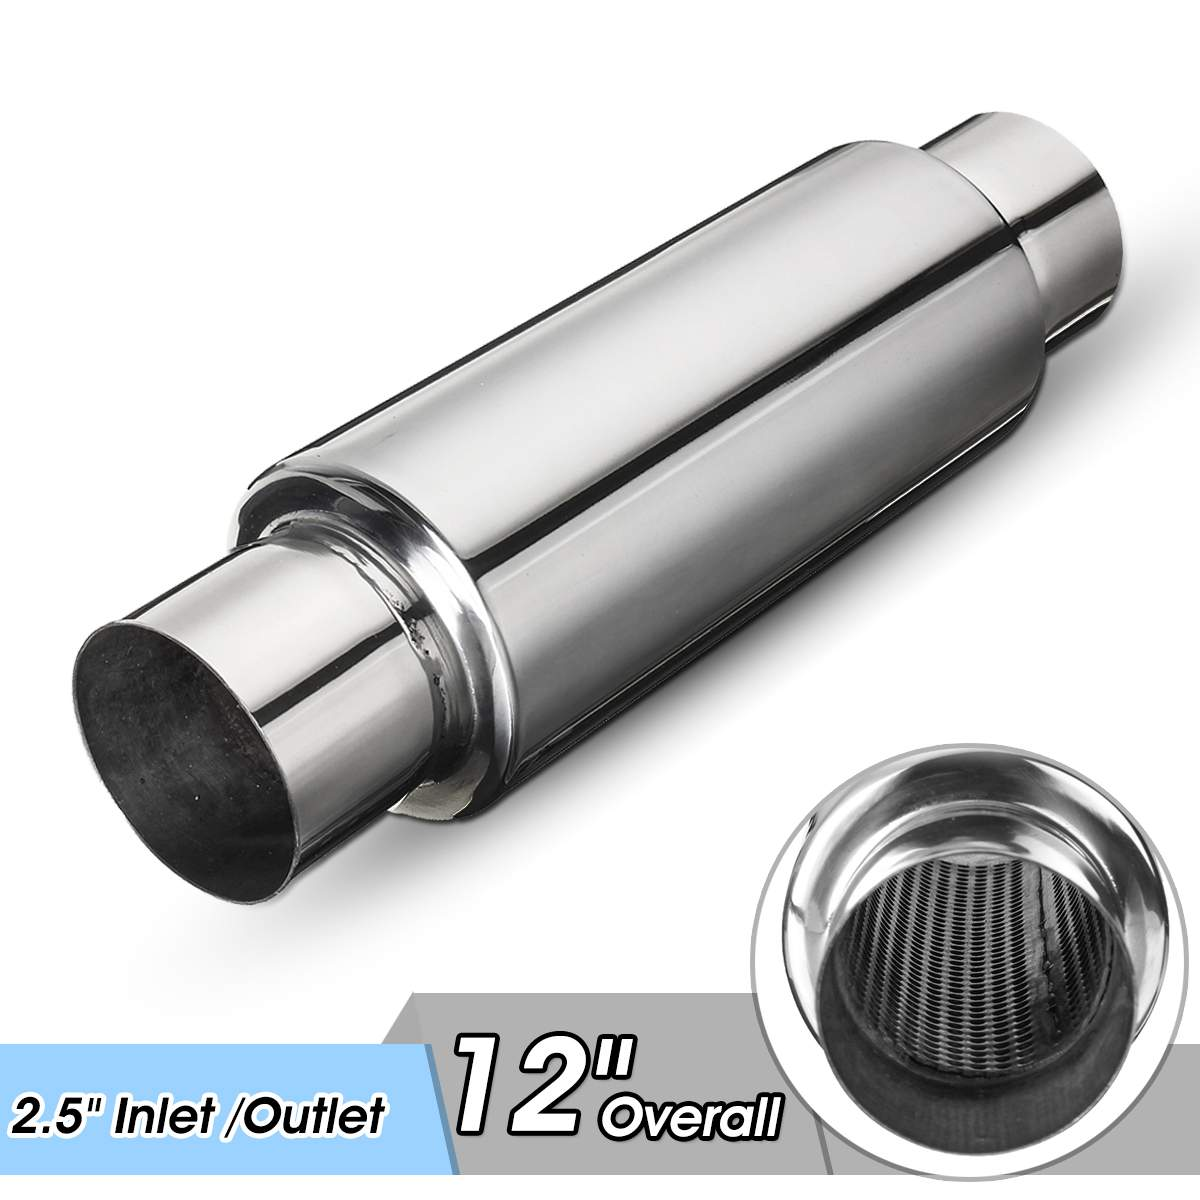 2x 60mm Inlet Universal Car Exhaust Tail Rear Muffler Tip Pipe Chrome Straight